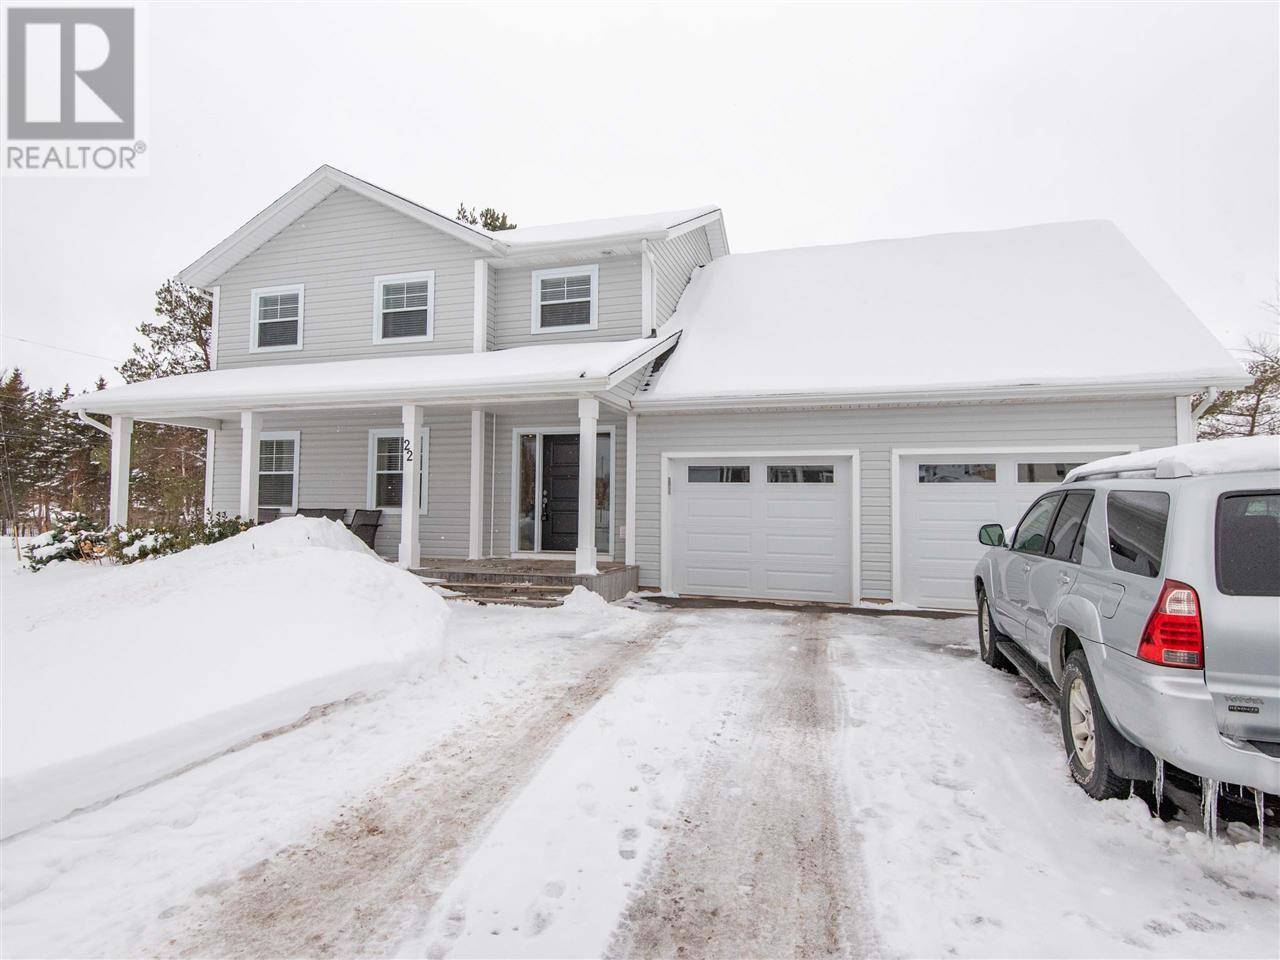 House for sale at 22 Fairfax Dr Stratford Prince Edward Island - MLS: 202002492